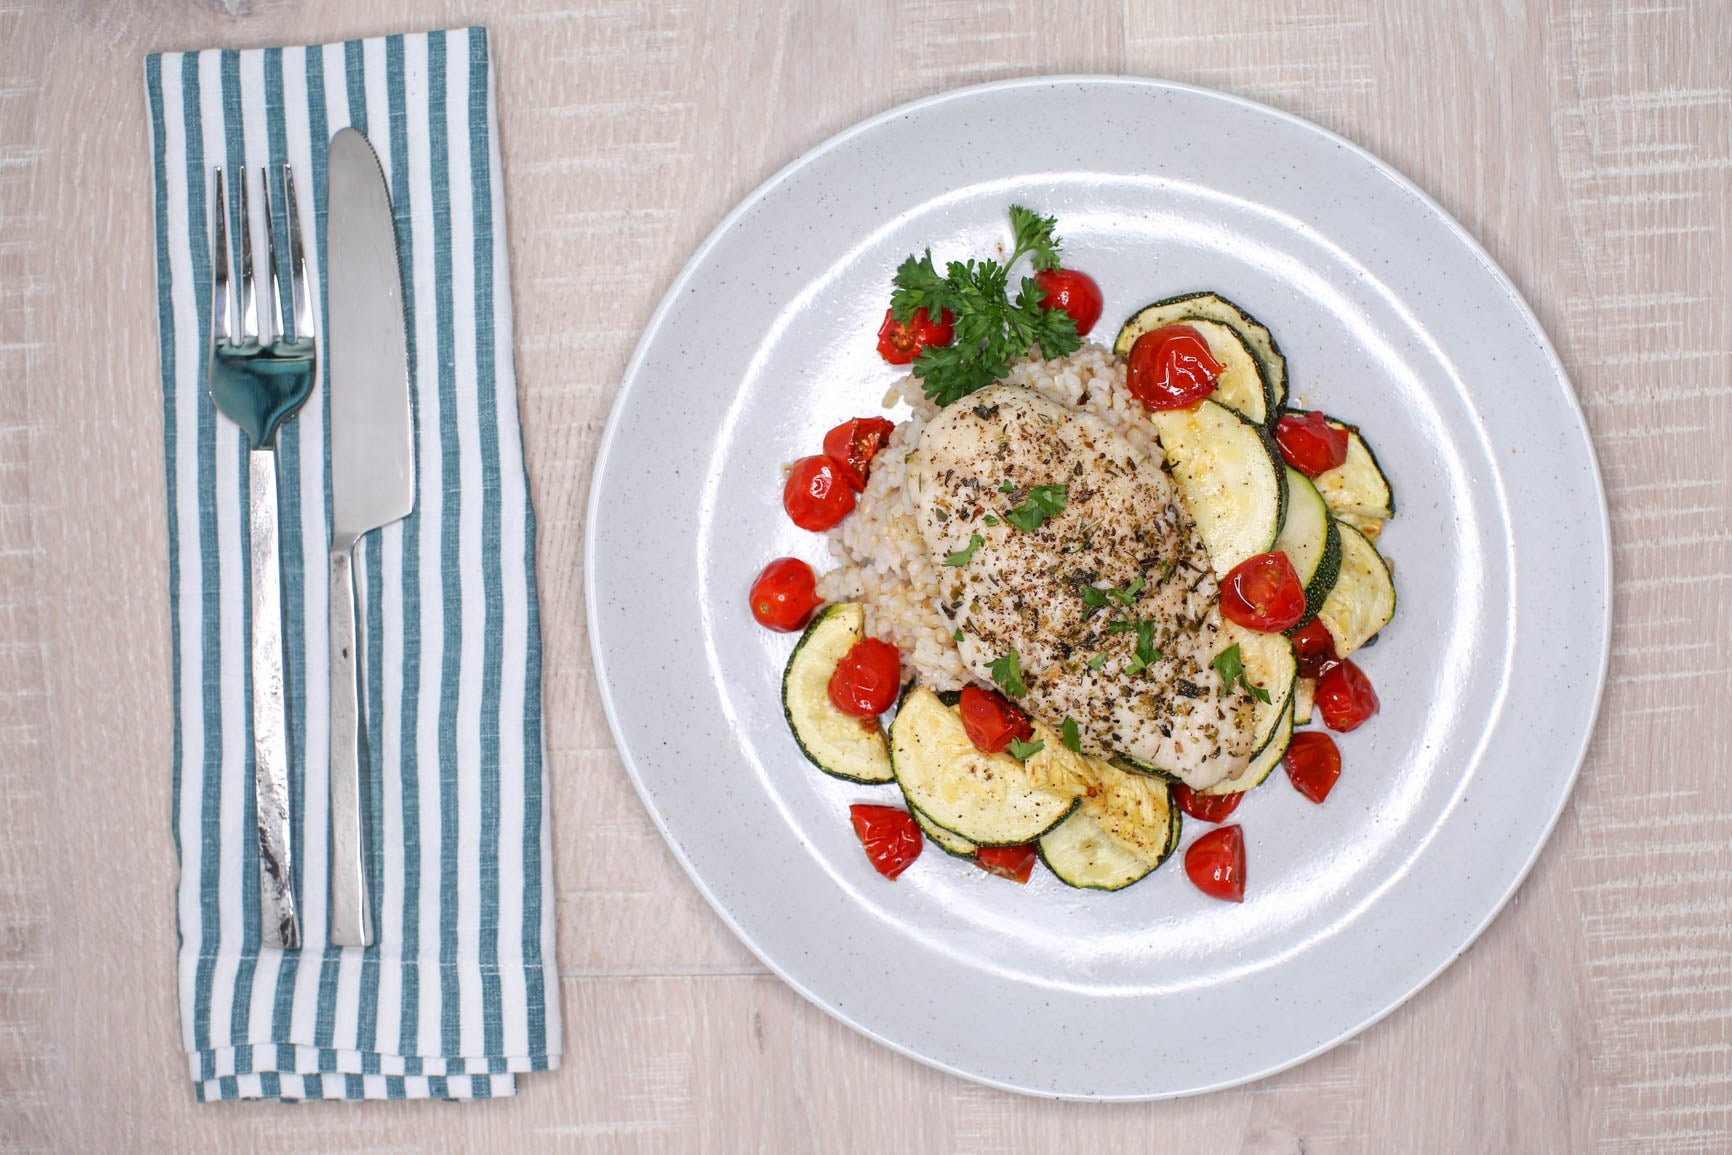 Herbed Chicken, Zucchini & Tomatoes w/ Brown Rice